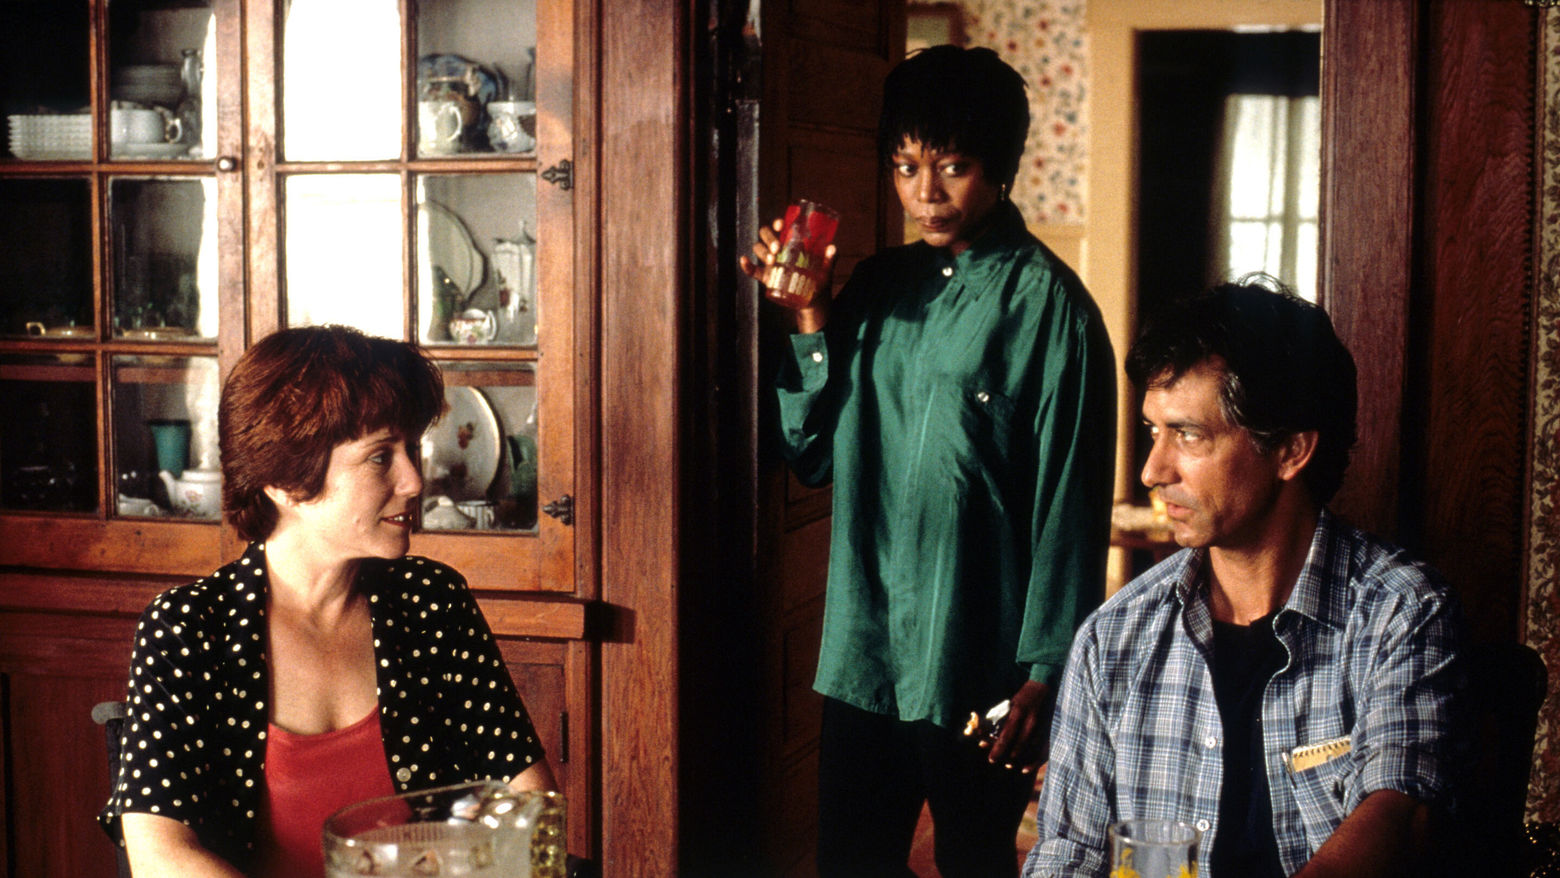 Still from the film Passion Fish (1992) showing a three people talking in a kitchen